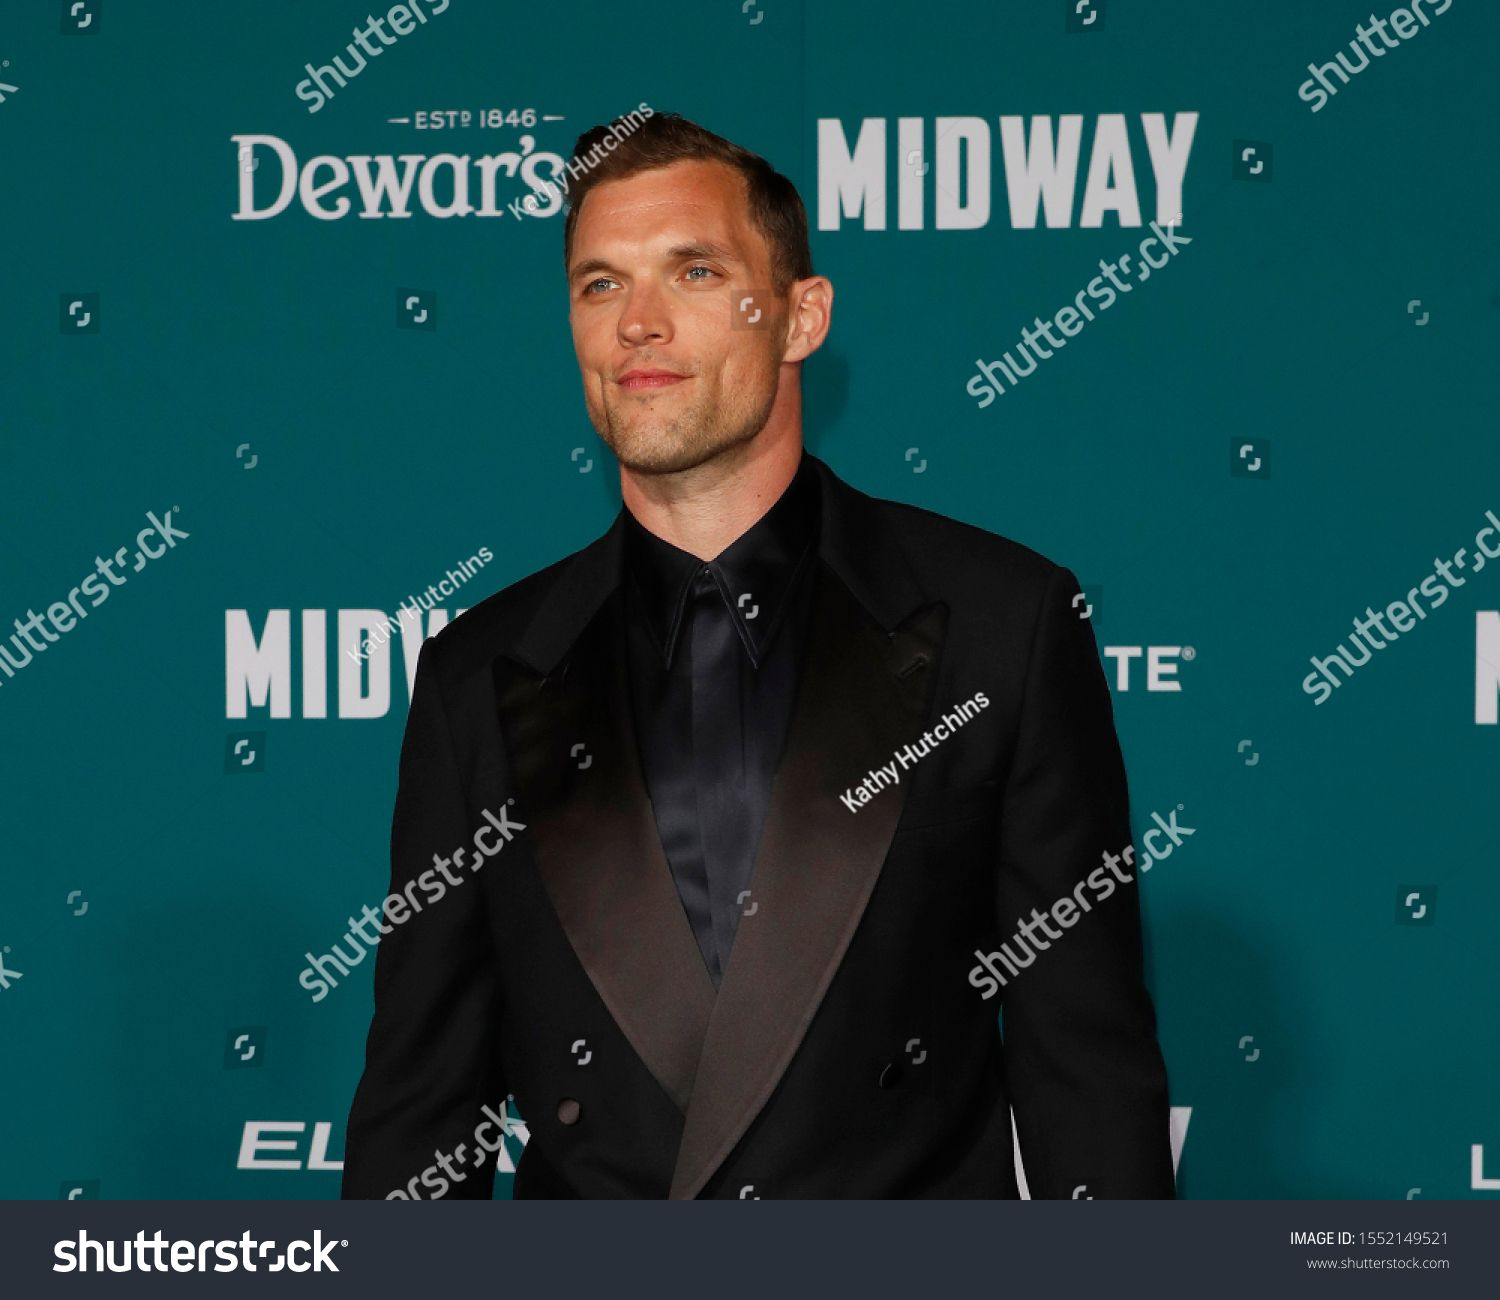 Los Angeles Nov 5 Ed Skrein At The Midway Premiere At The Village Theater On November 5 2019 In We Ad Ad Ed Skrein Midwa In 2020 Dewar S Premiere Image